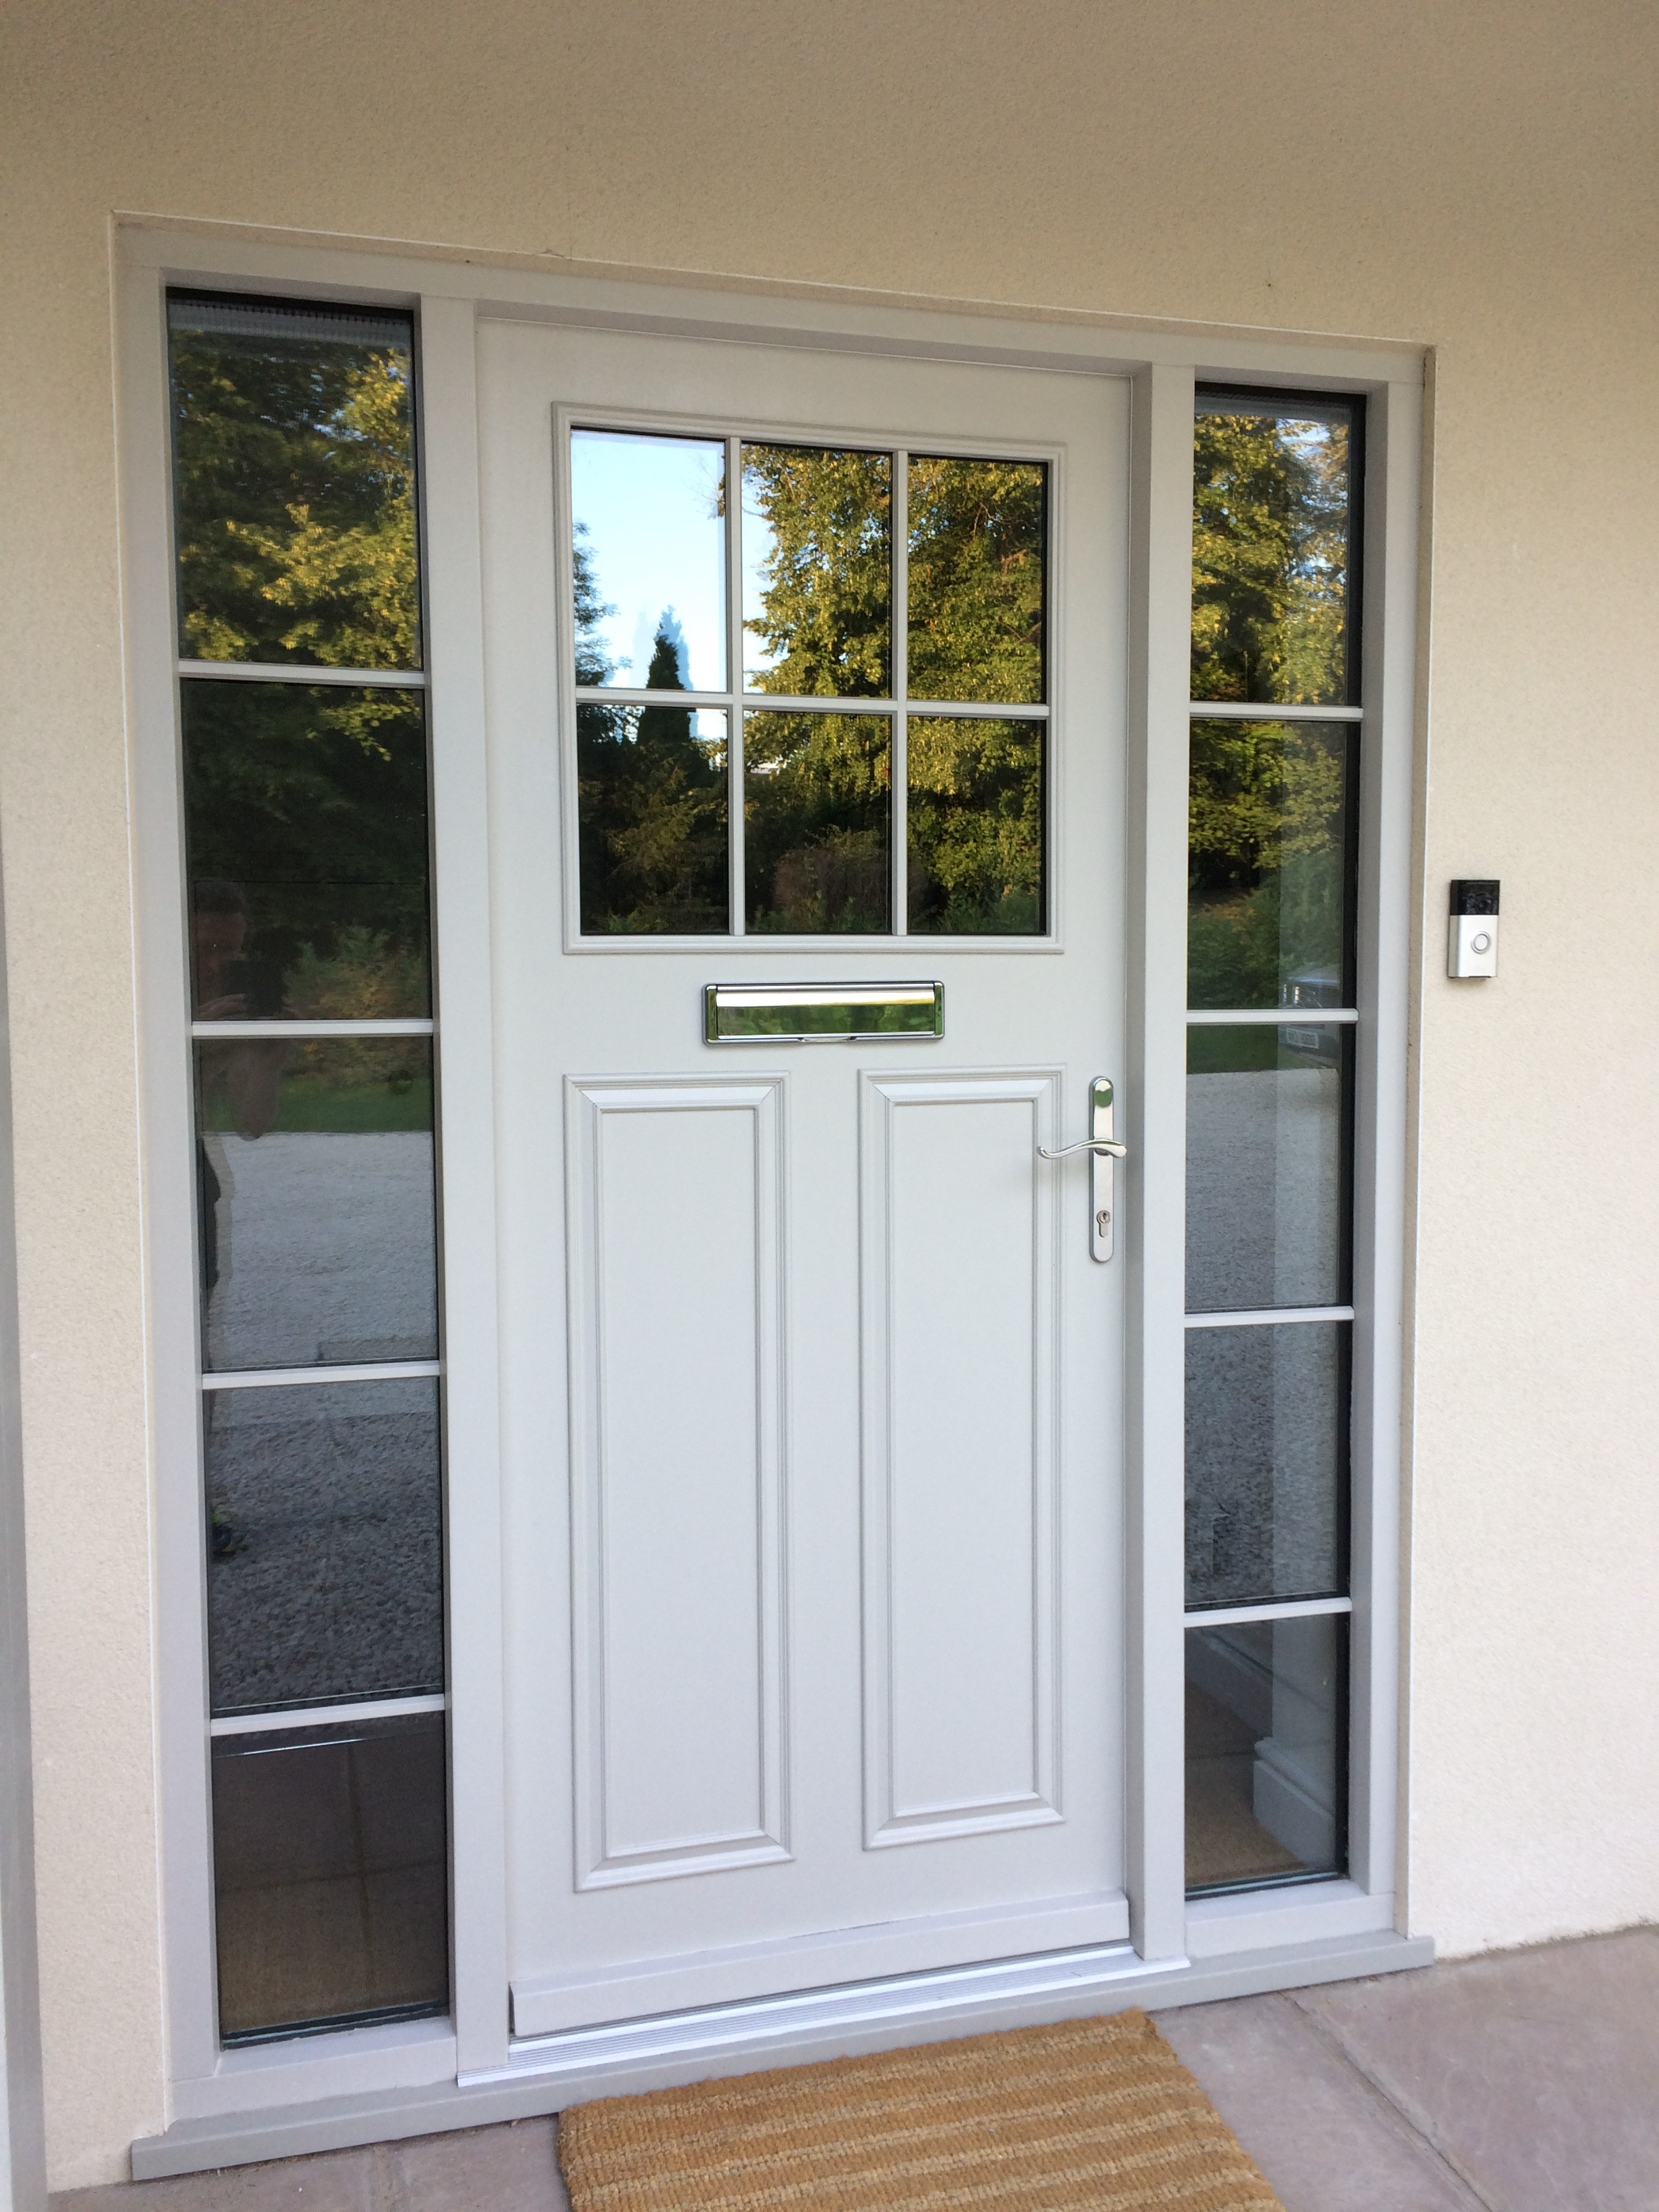 Grand Openings High Quality Windows And Doors In Surrey